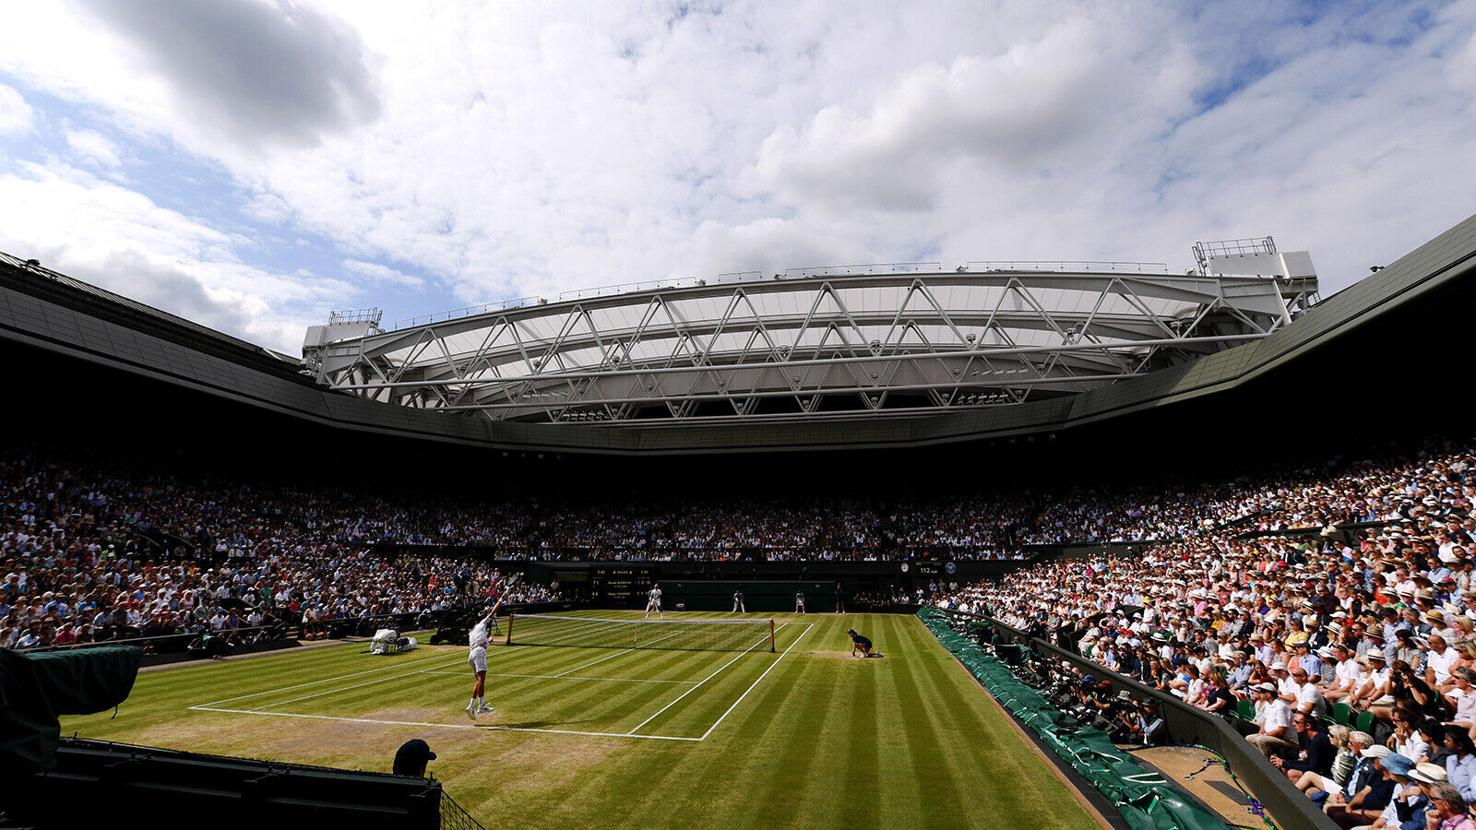 A general view inside Centre Court in the men's singles final between Roger Federer and Novak Djokovic.